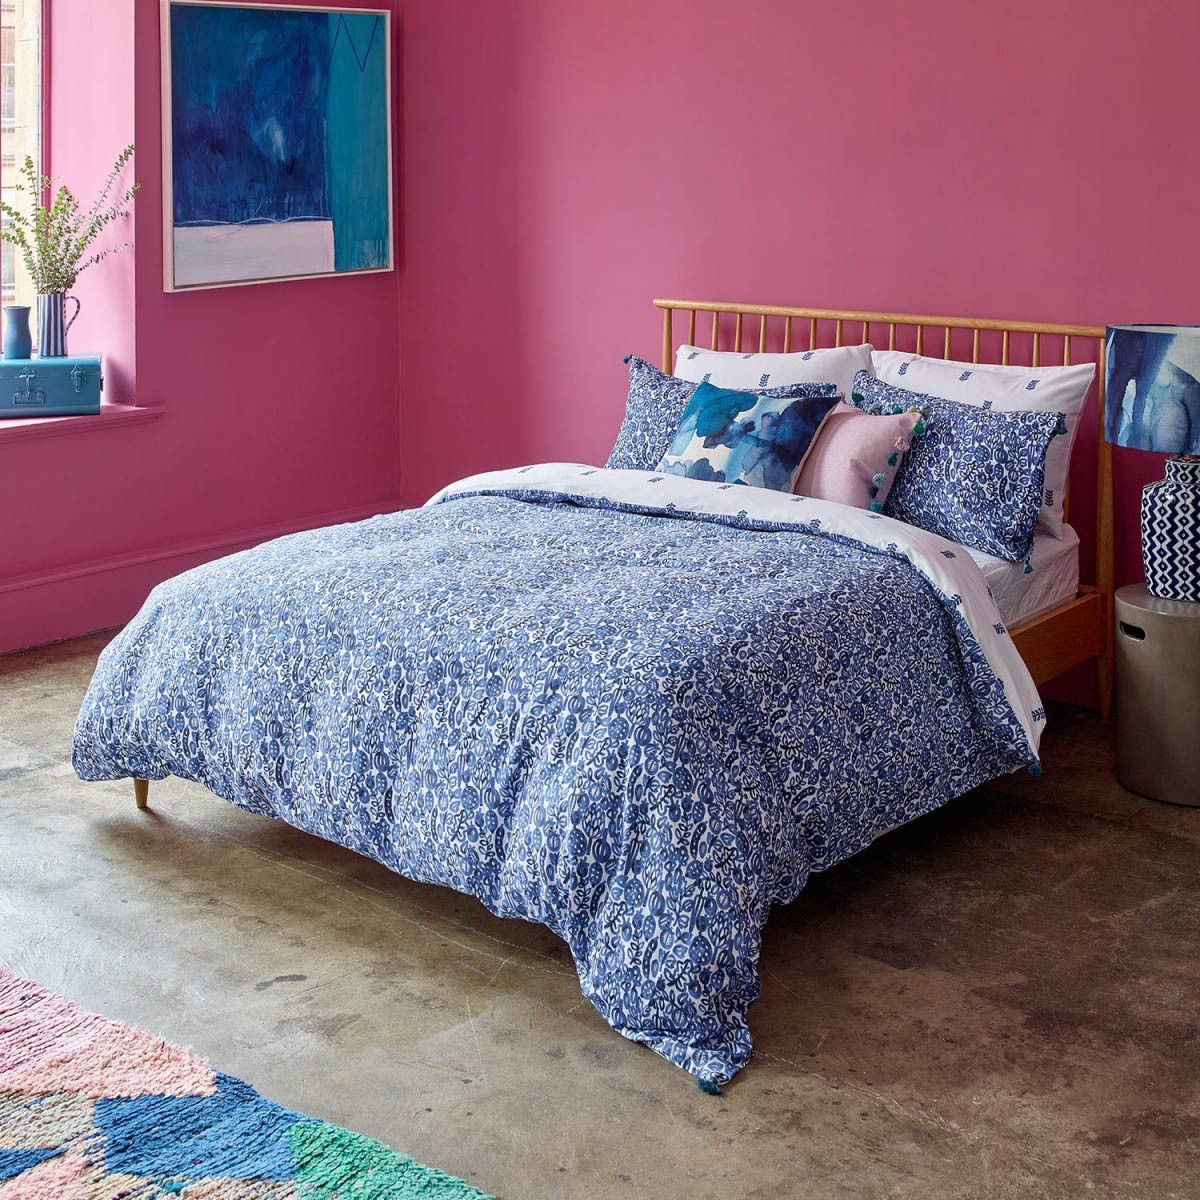 f75adafa3b7e Shop this Bluebellgray Wee Pomegranate Duvet Cover & Pillowcase Set for a  smaller scale version of